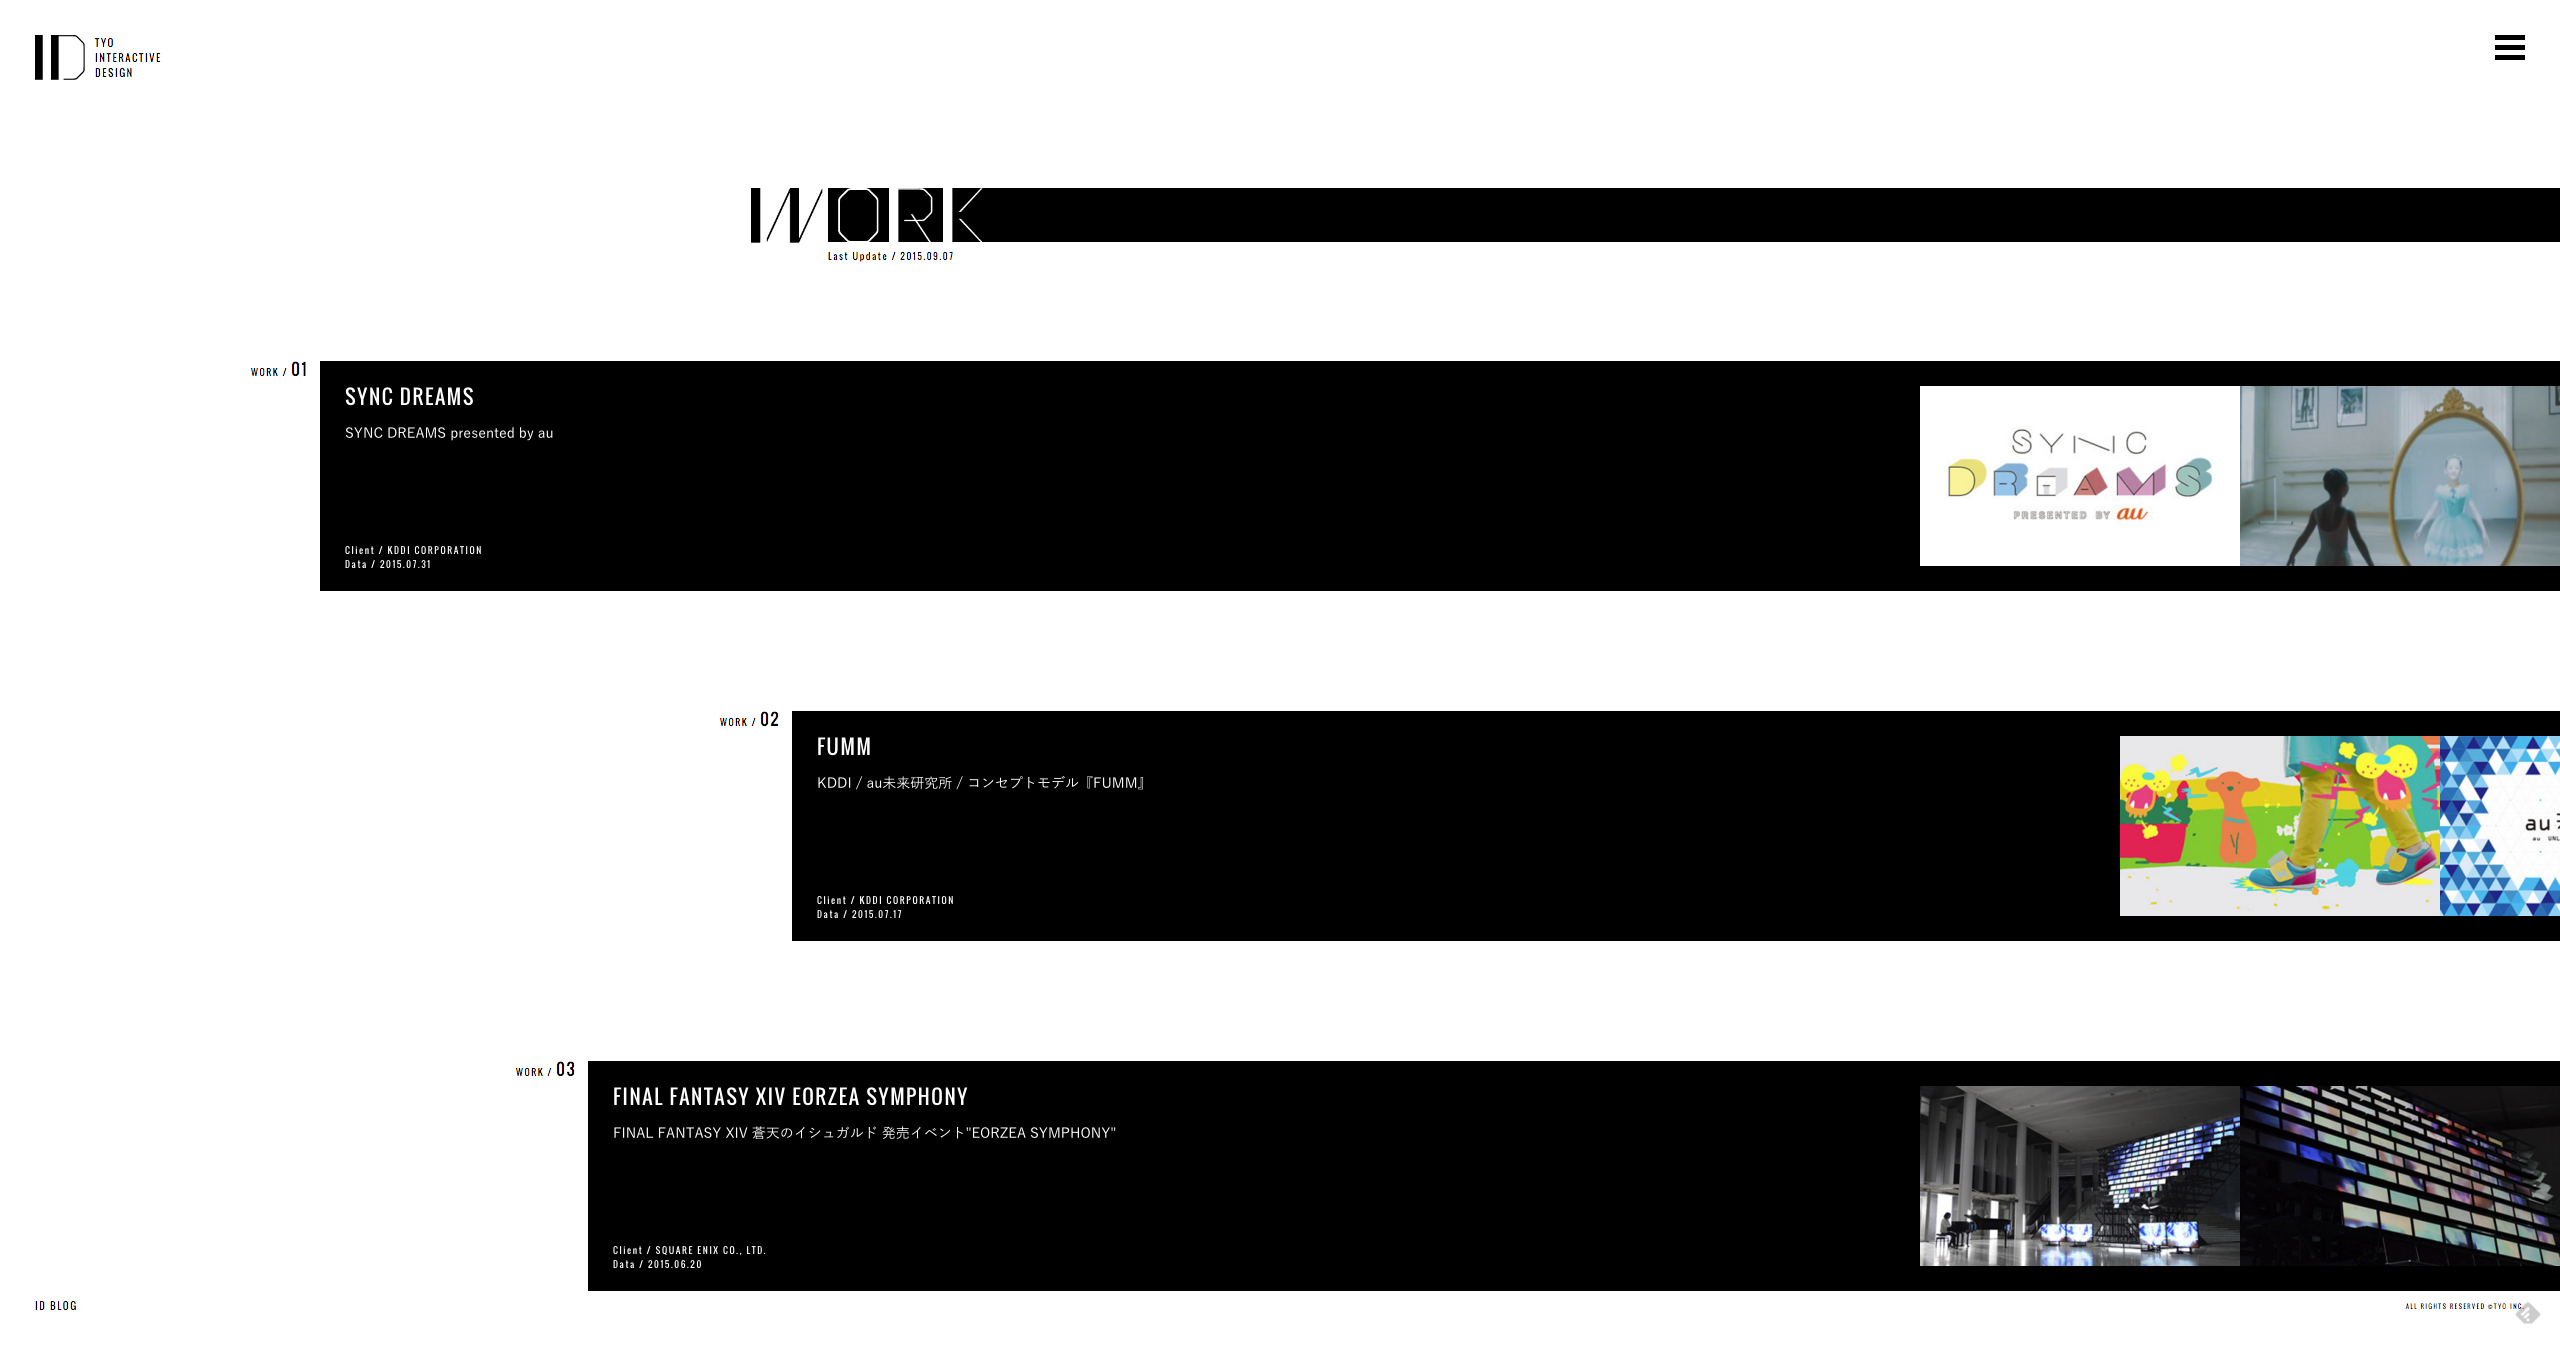 TYO #interactive #project #animation #loading #menu #hamburger #hambergermenu #black #white #hover #mouseover